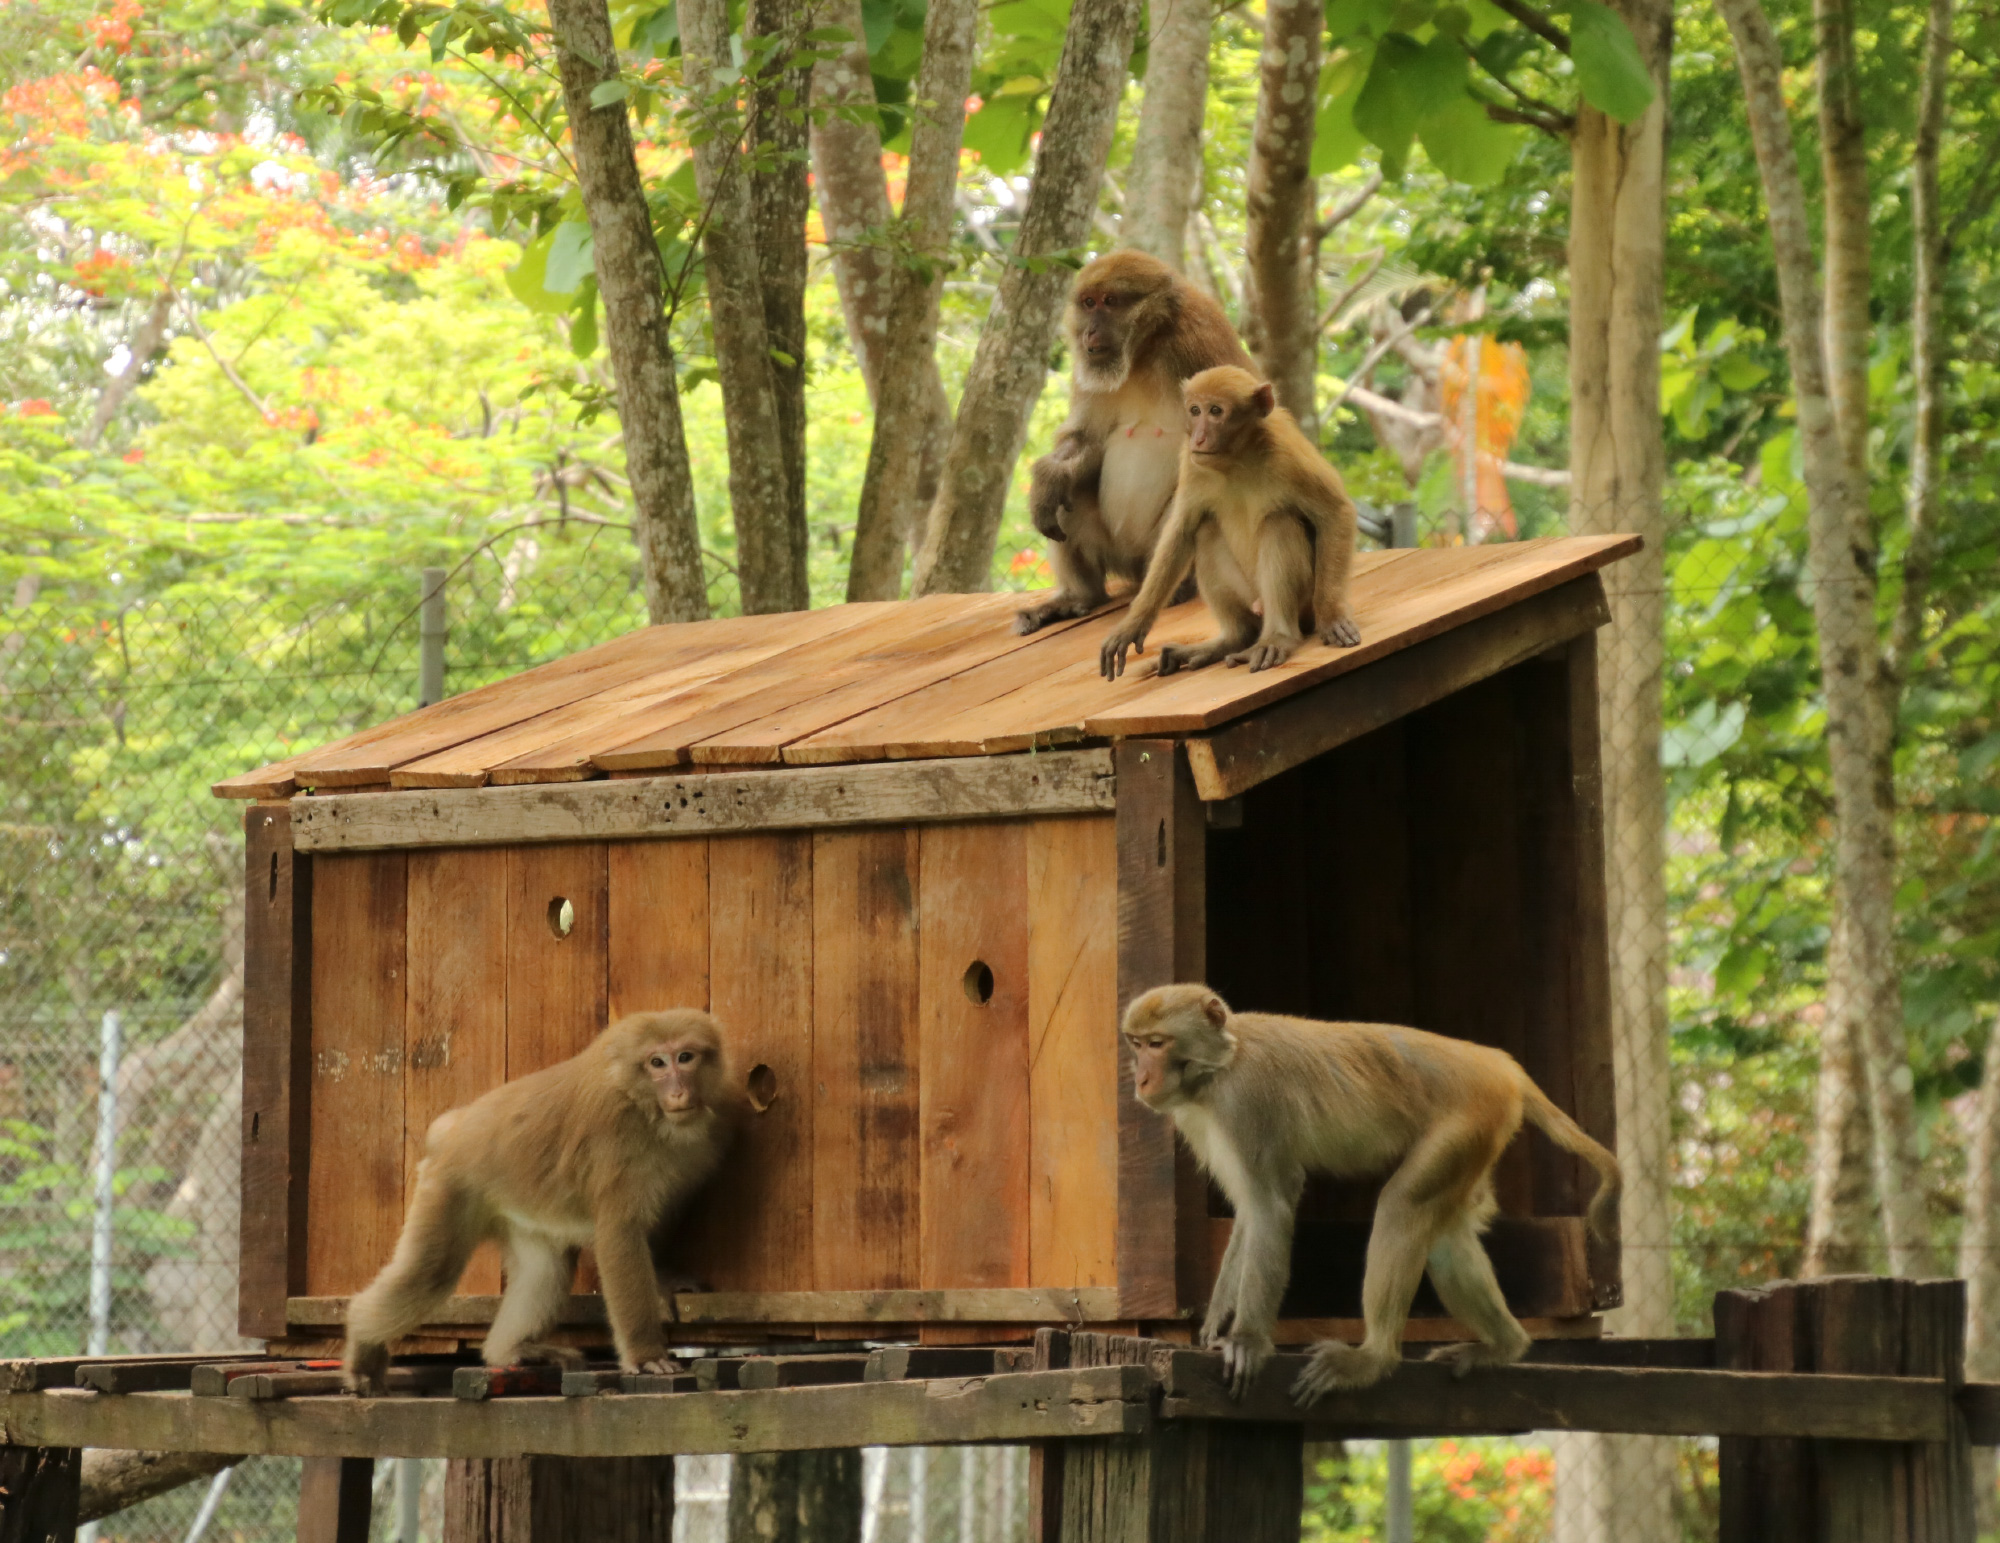 Macaques explore their new wooden house